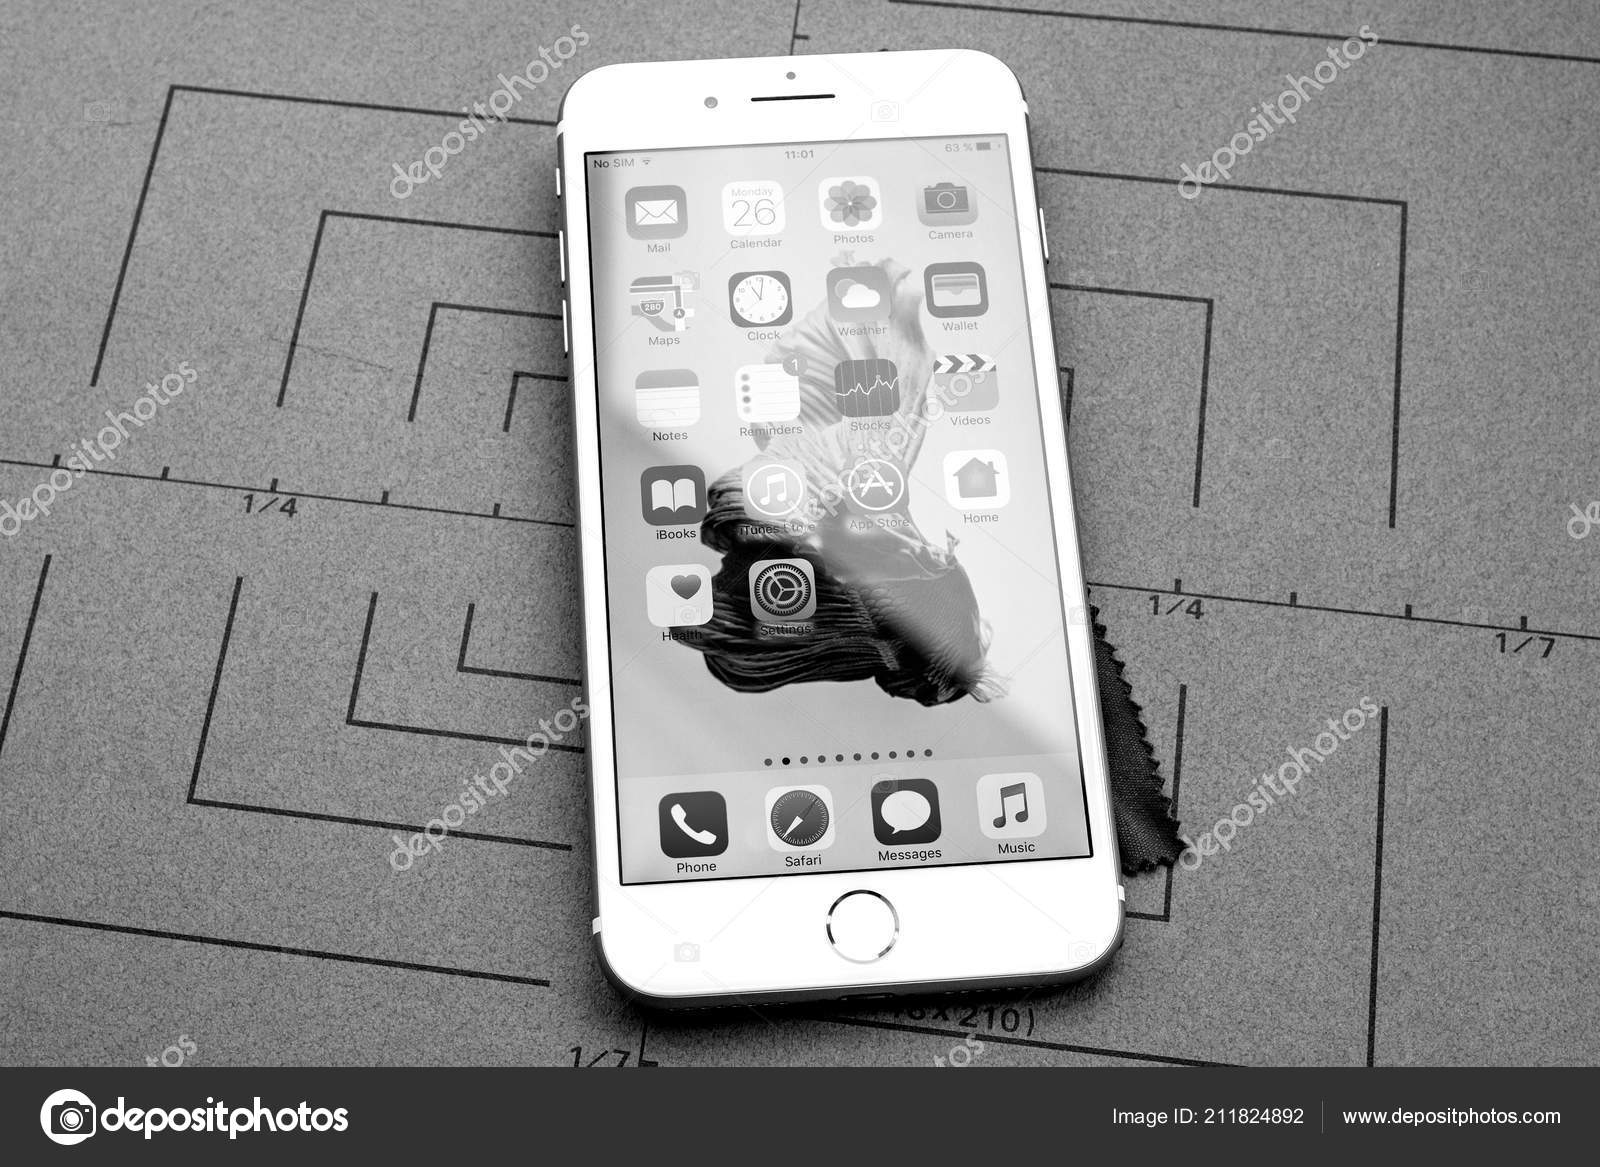 Paris france sep 26 2016 new apple iphone 7 8 plus smartphone after unboxing with home screen and multiple apps black and white photo by